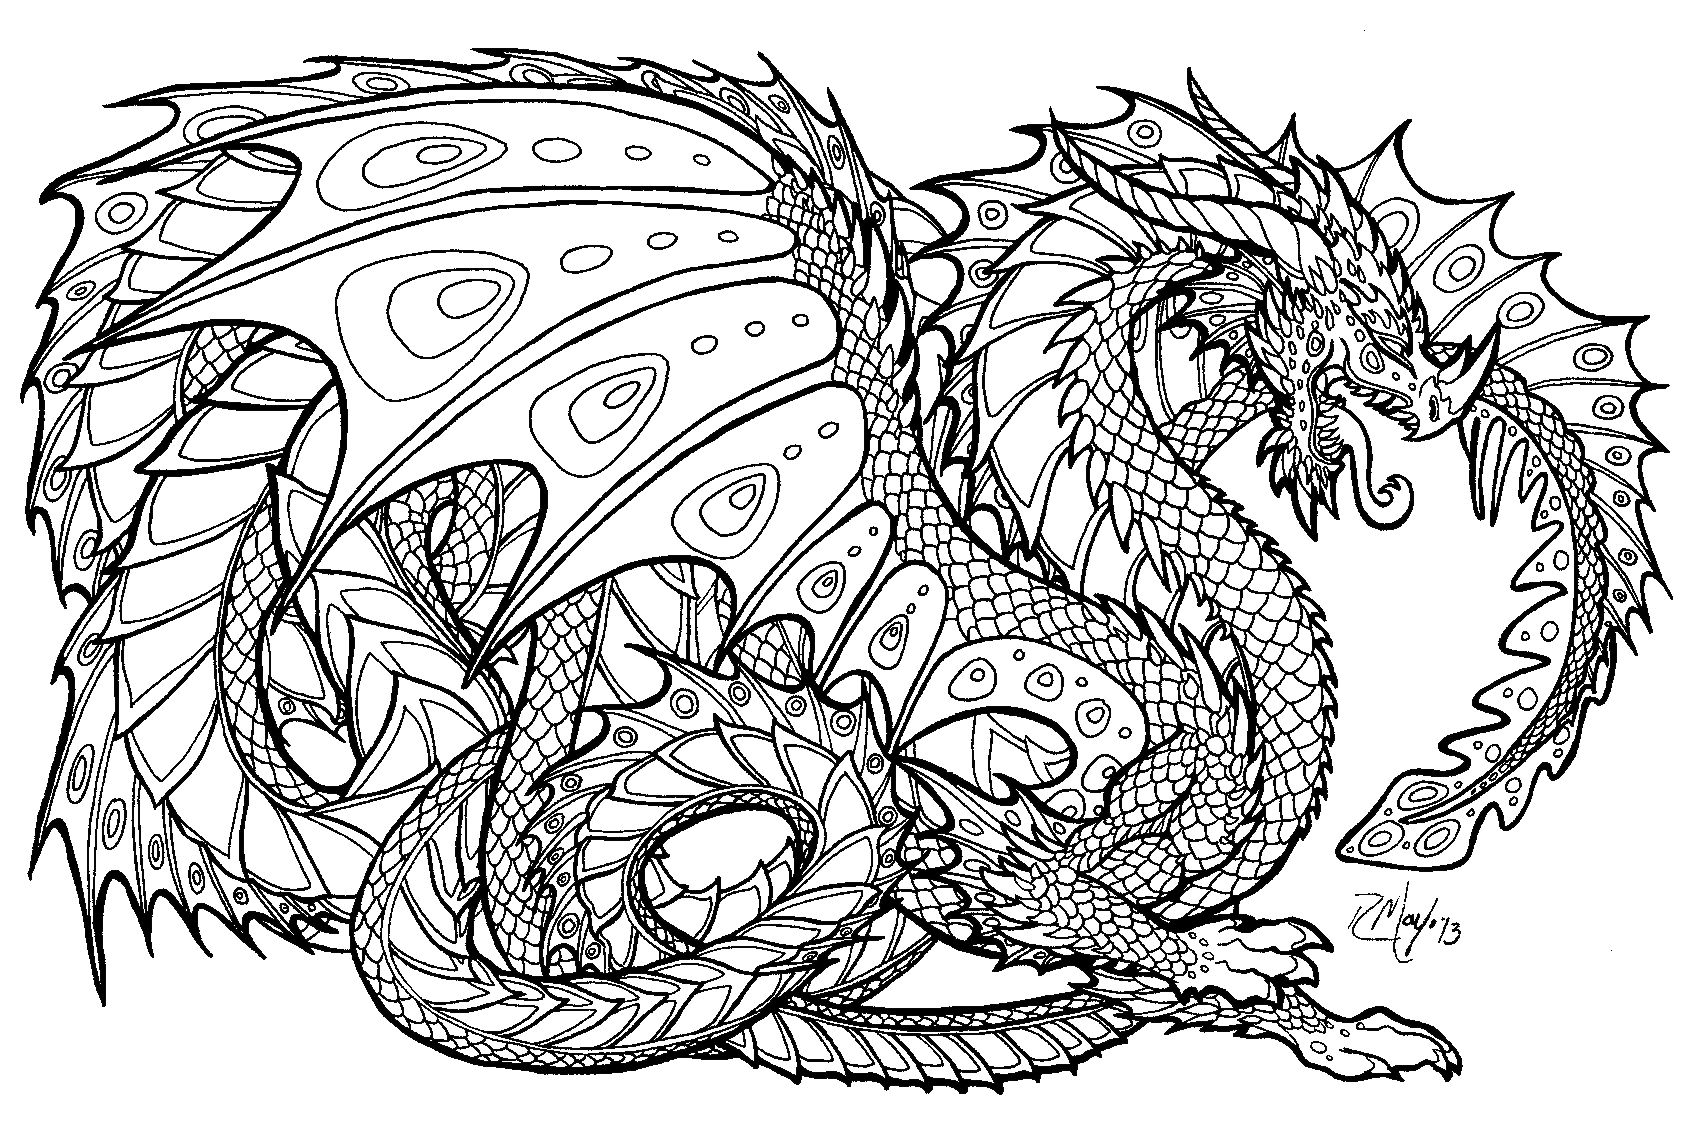 Free Printable Coloring Pages For Adults Advanced Dragons - Google - Free Printable Coloring Pages For Adults Advanced